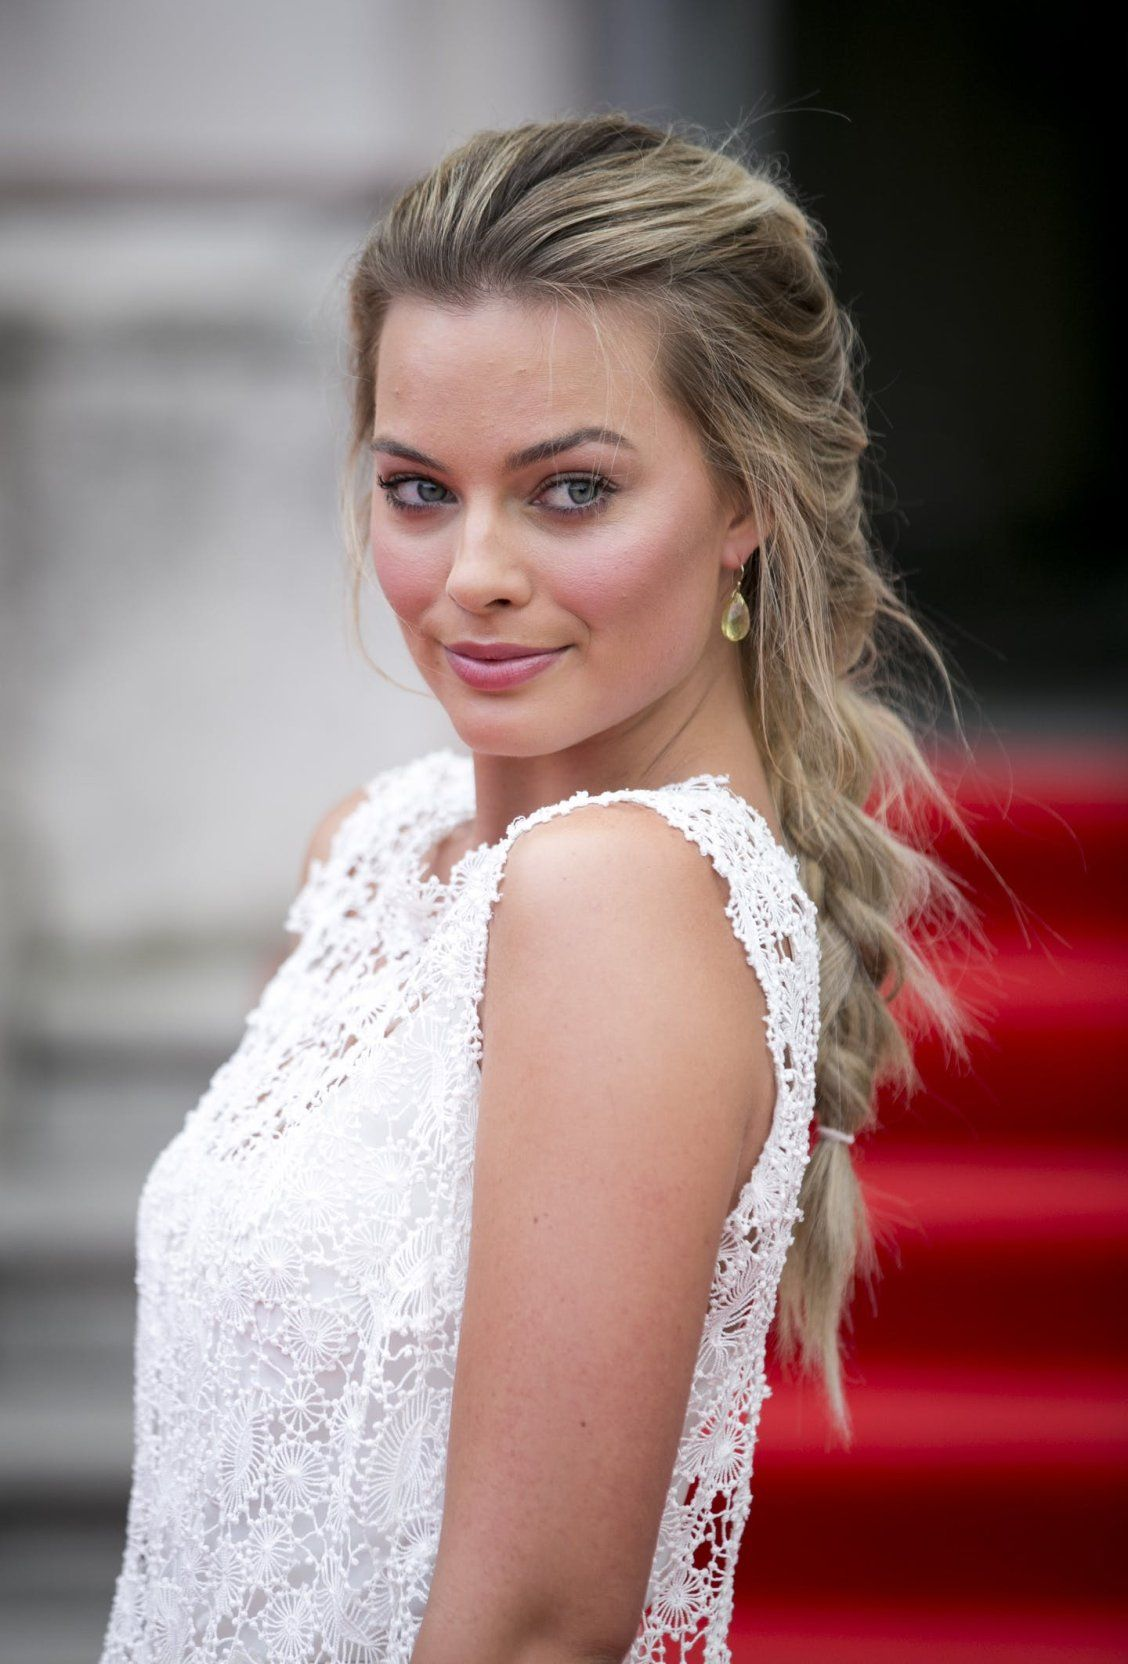 French-Braid Trendy and Stunning Long Hairstyles 2020